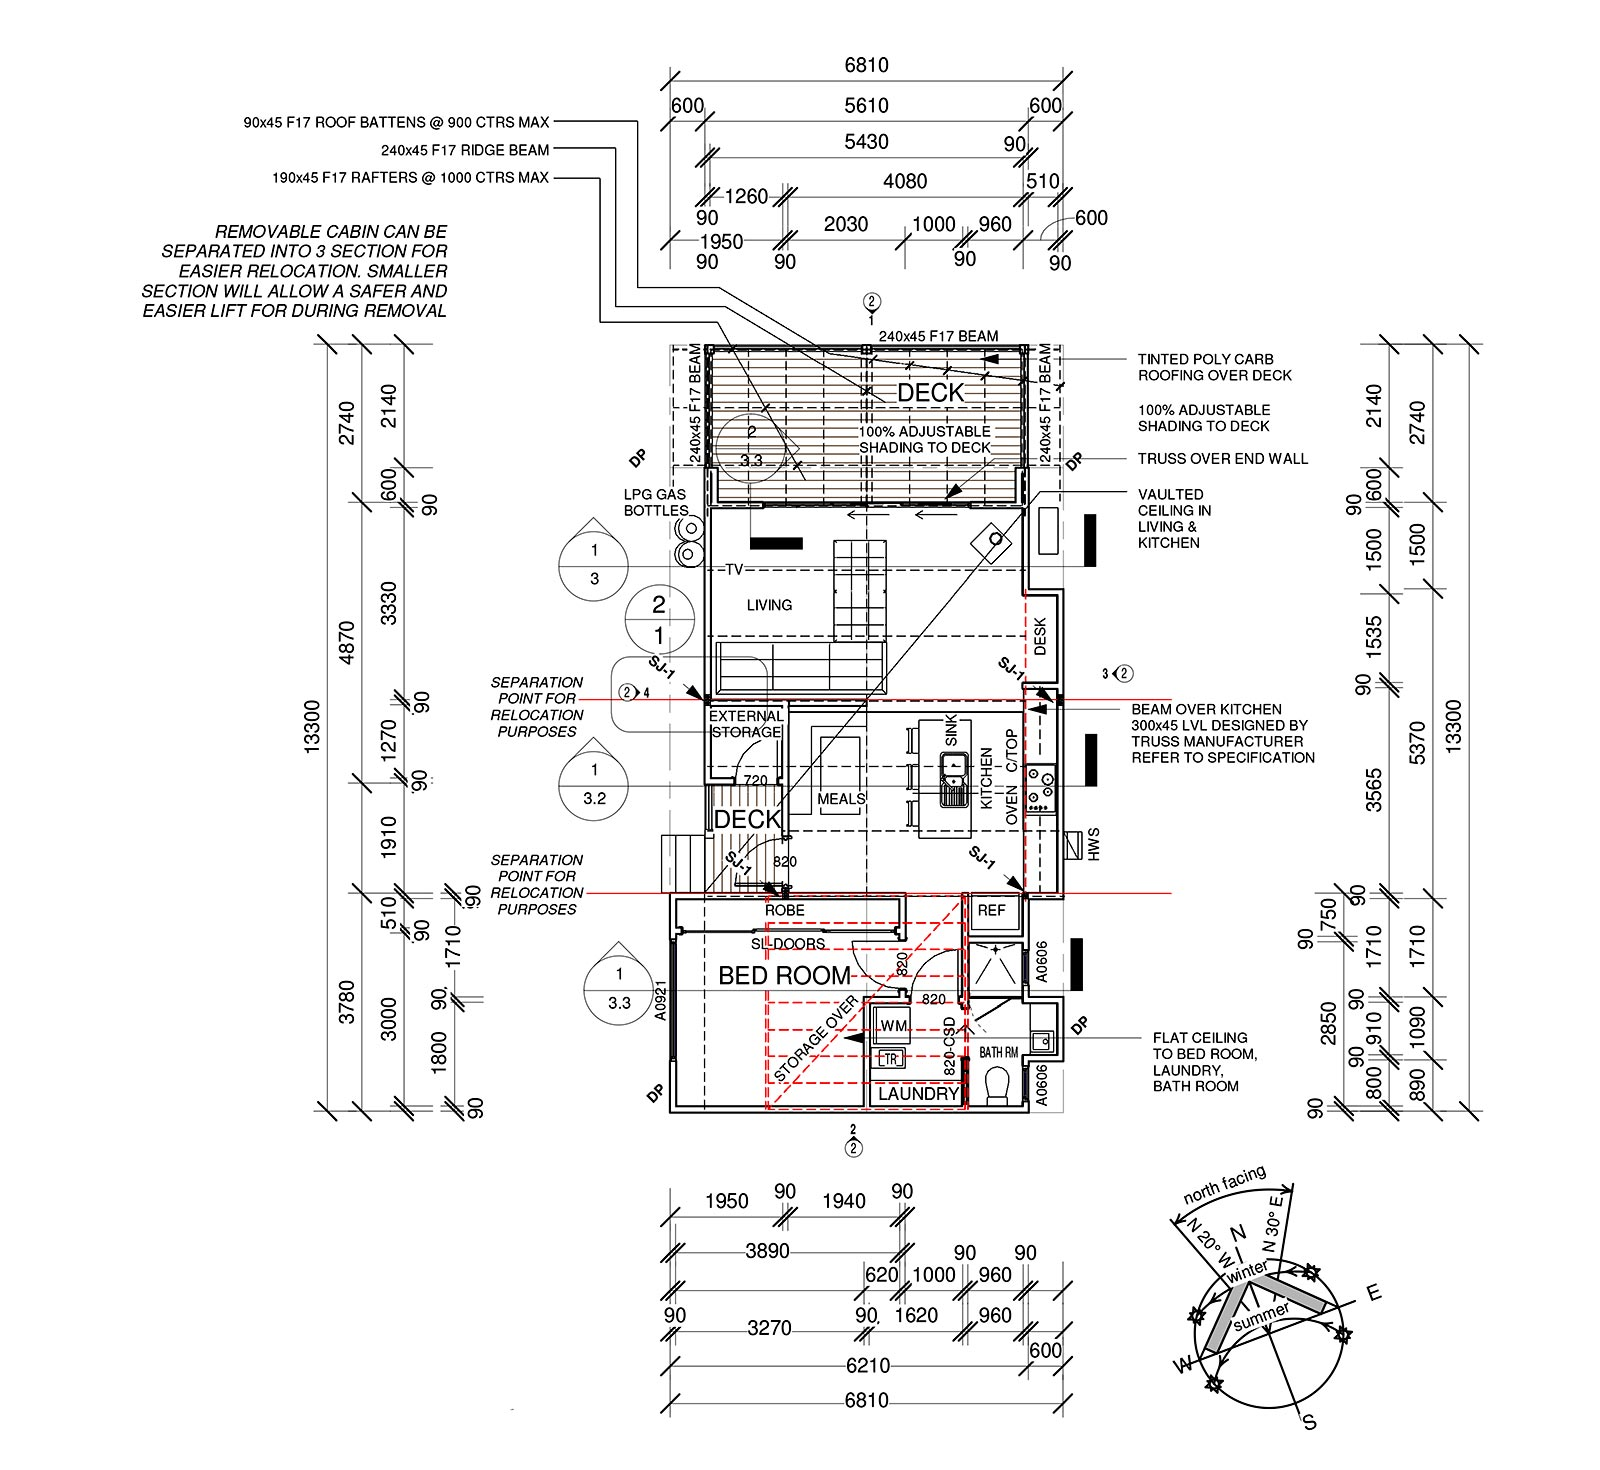 Small Cabin Plans to fit dwelling in inner city block